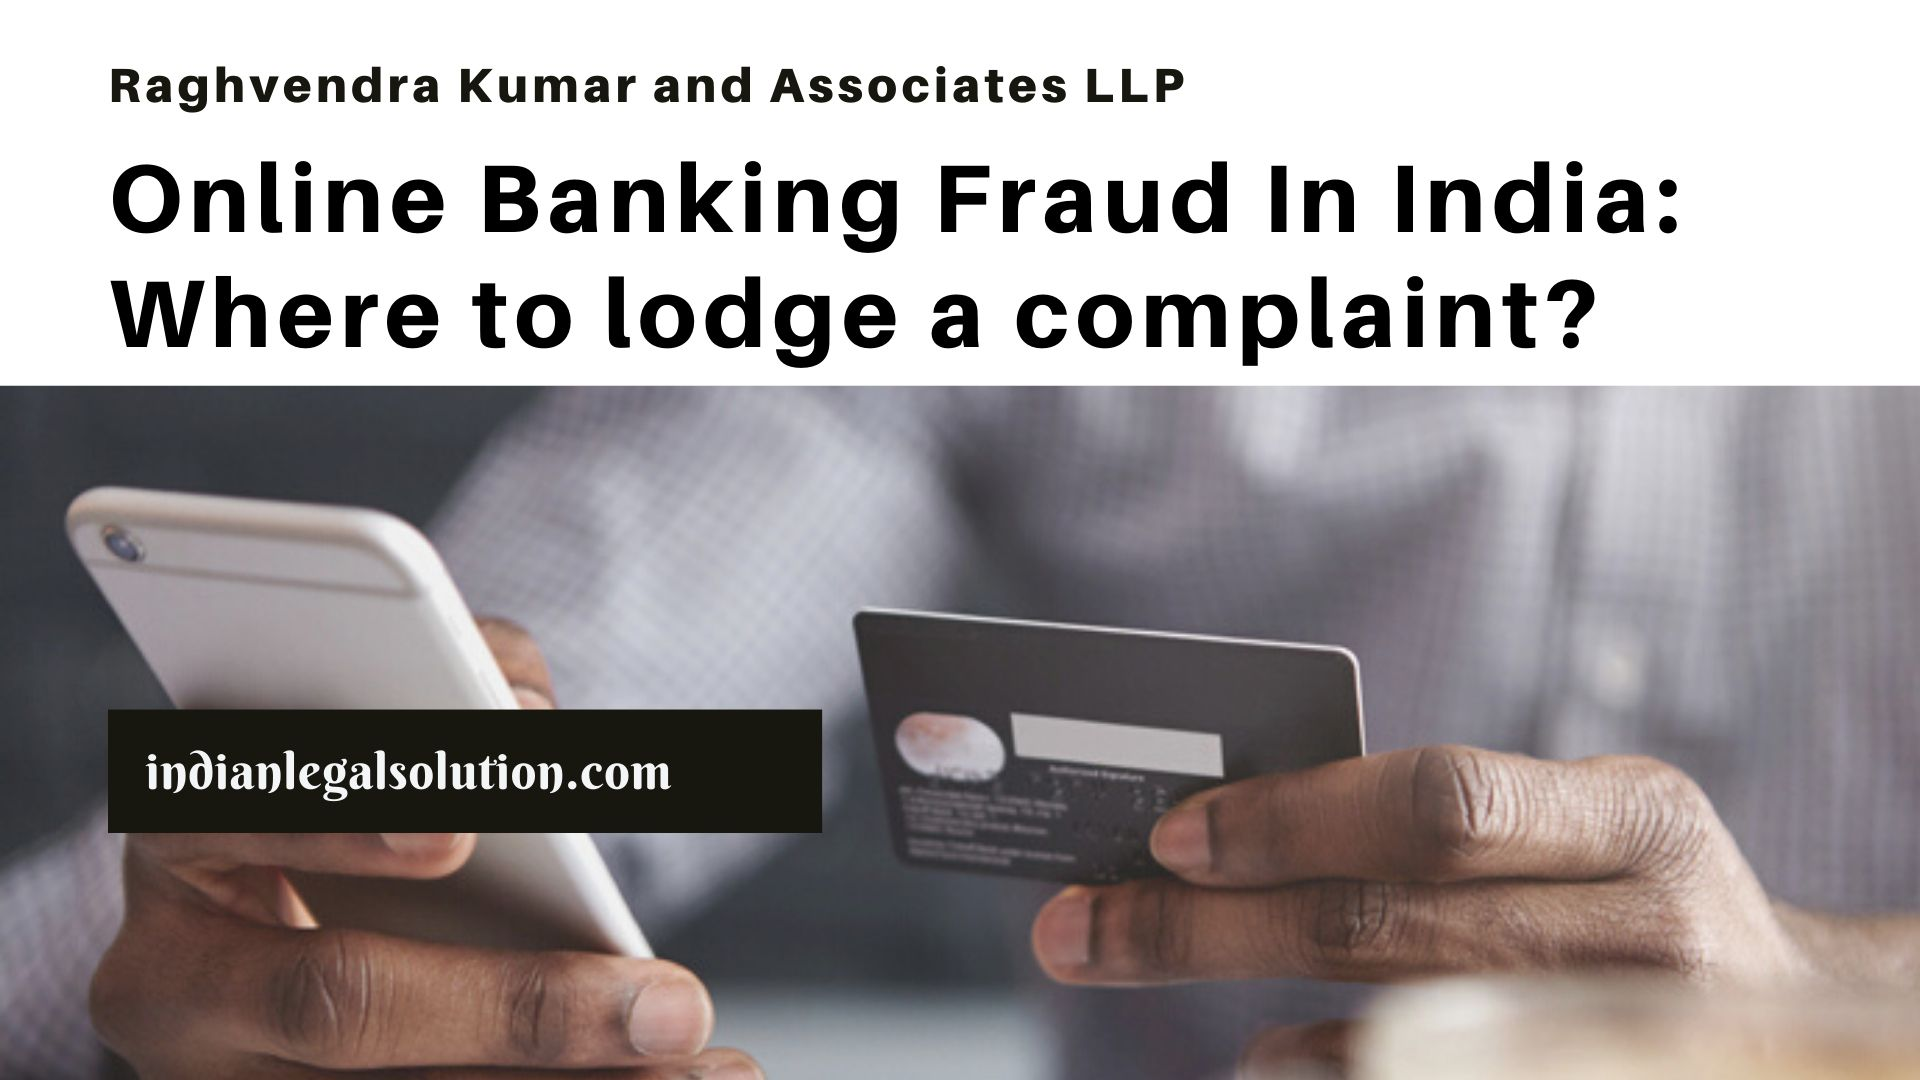 Online Banking Fraud In India Where To Lodge A Complaint Indian Legal Solution